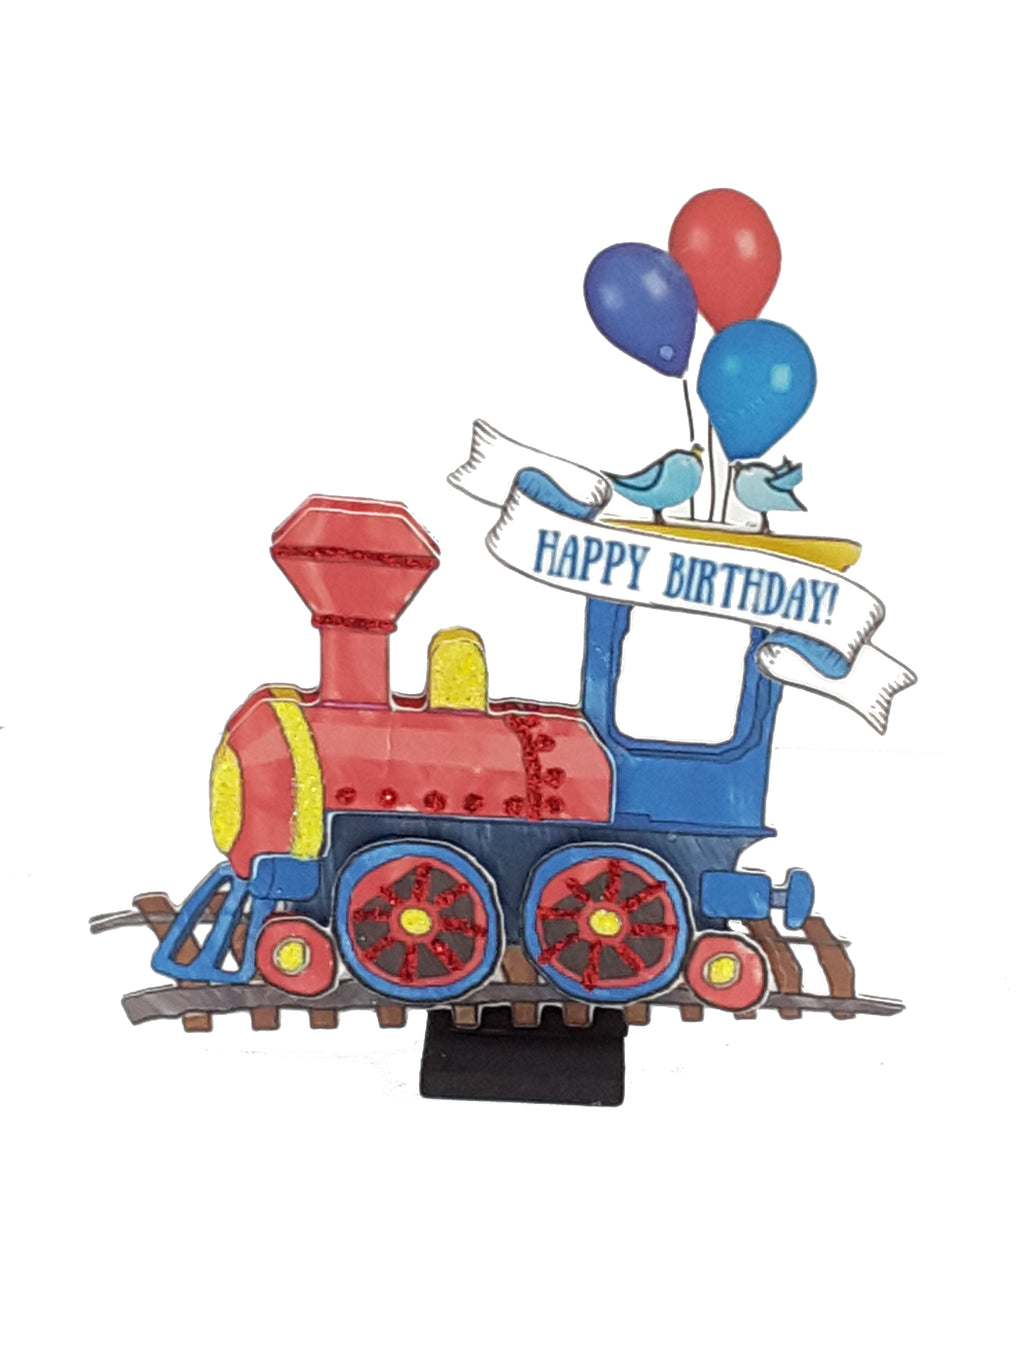 3D Happy Birthday Card with Toy Train - The Last Word Bish